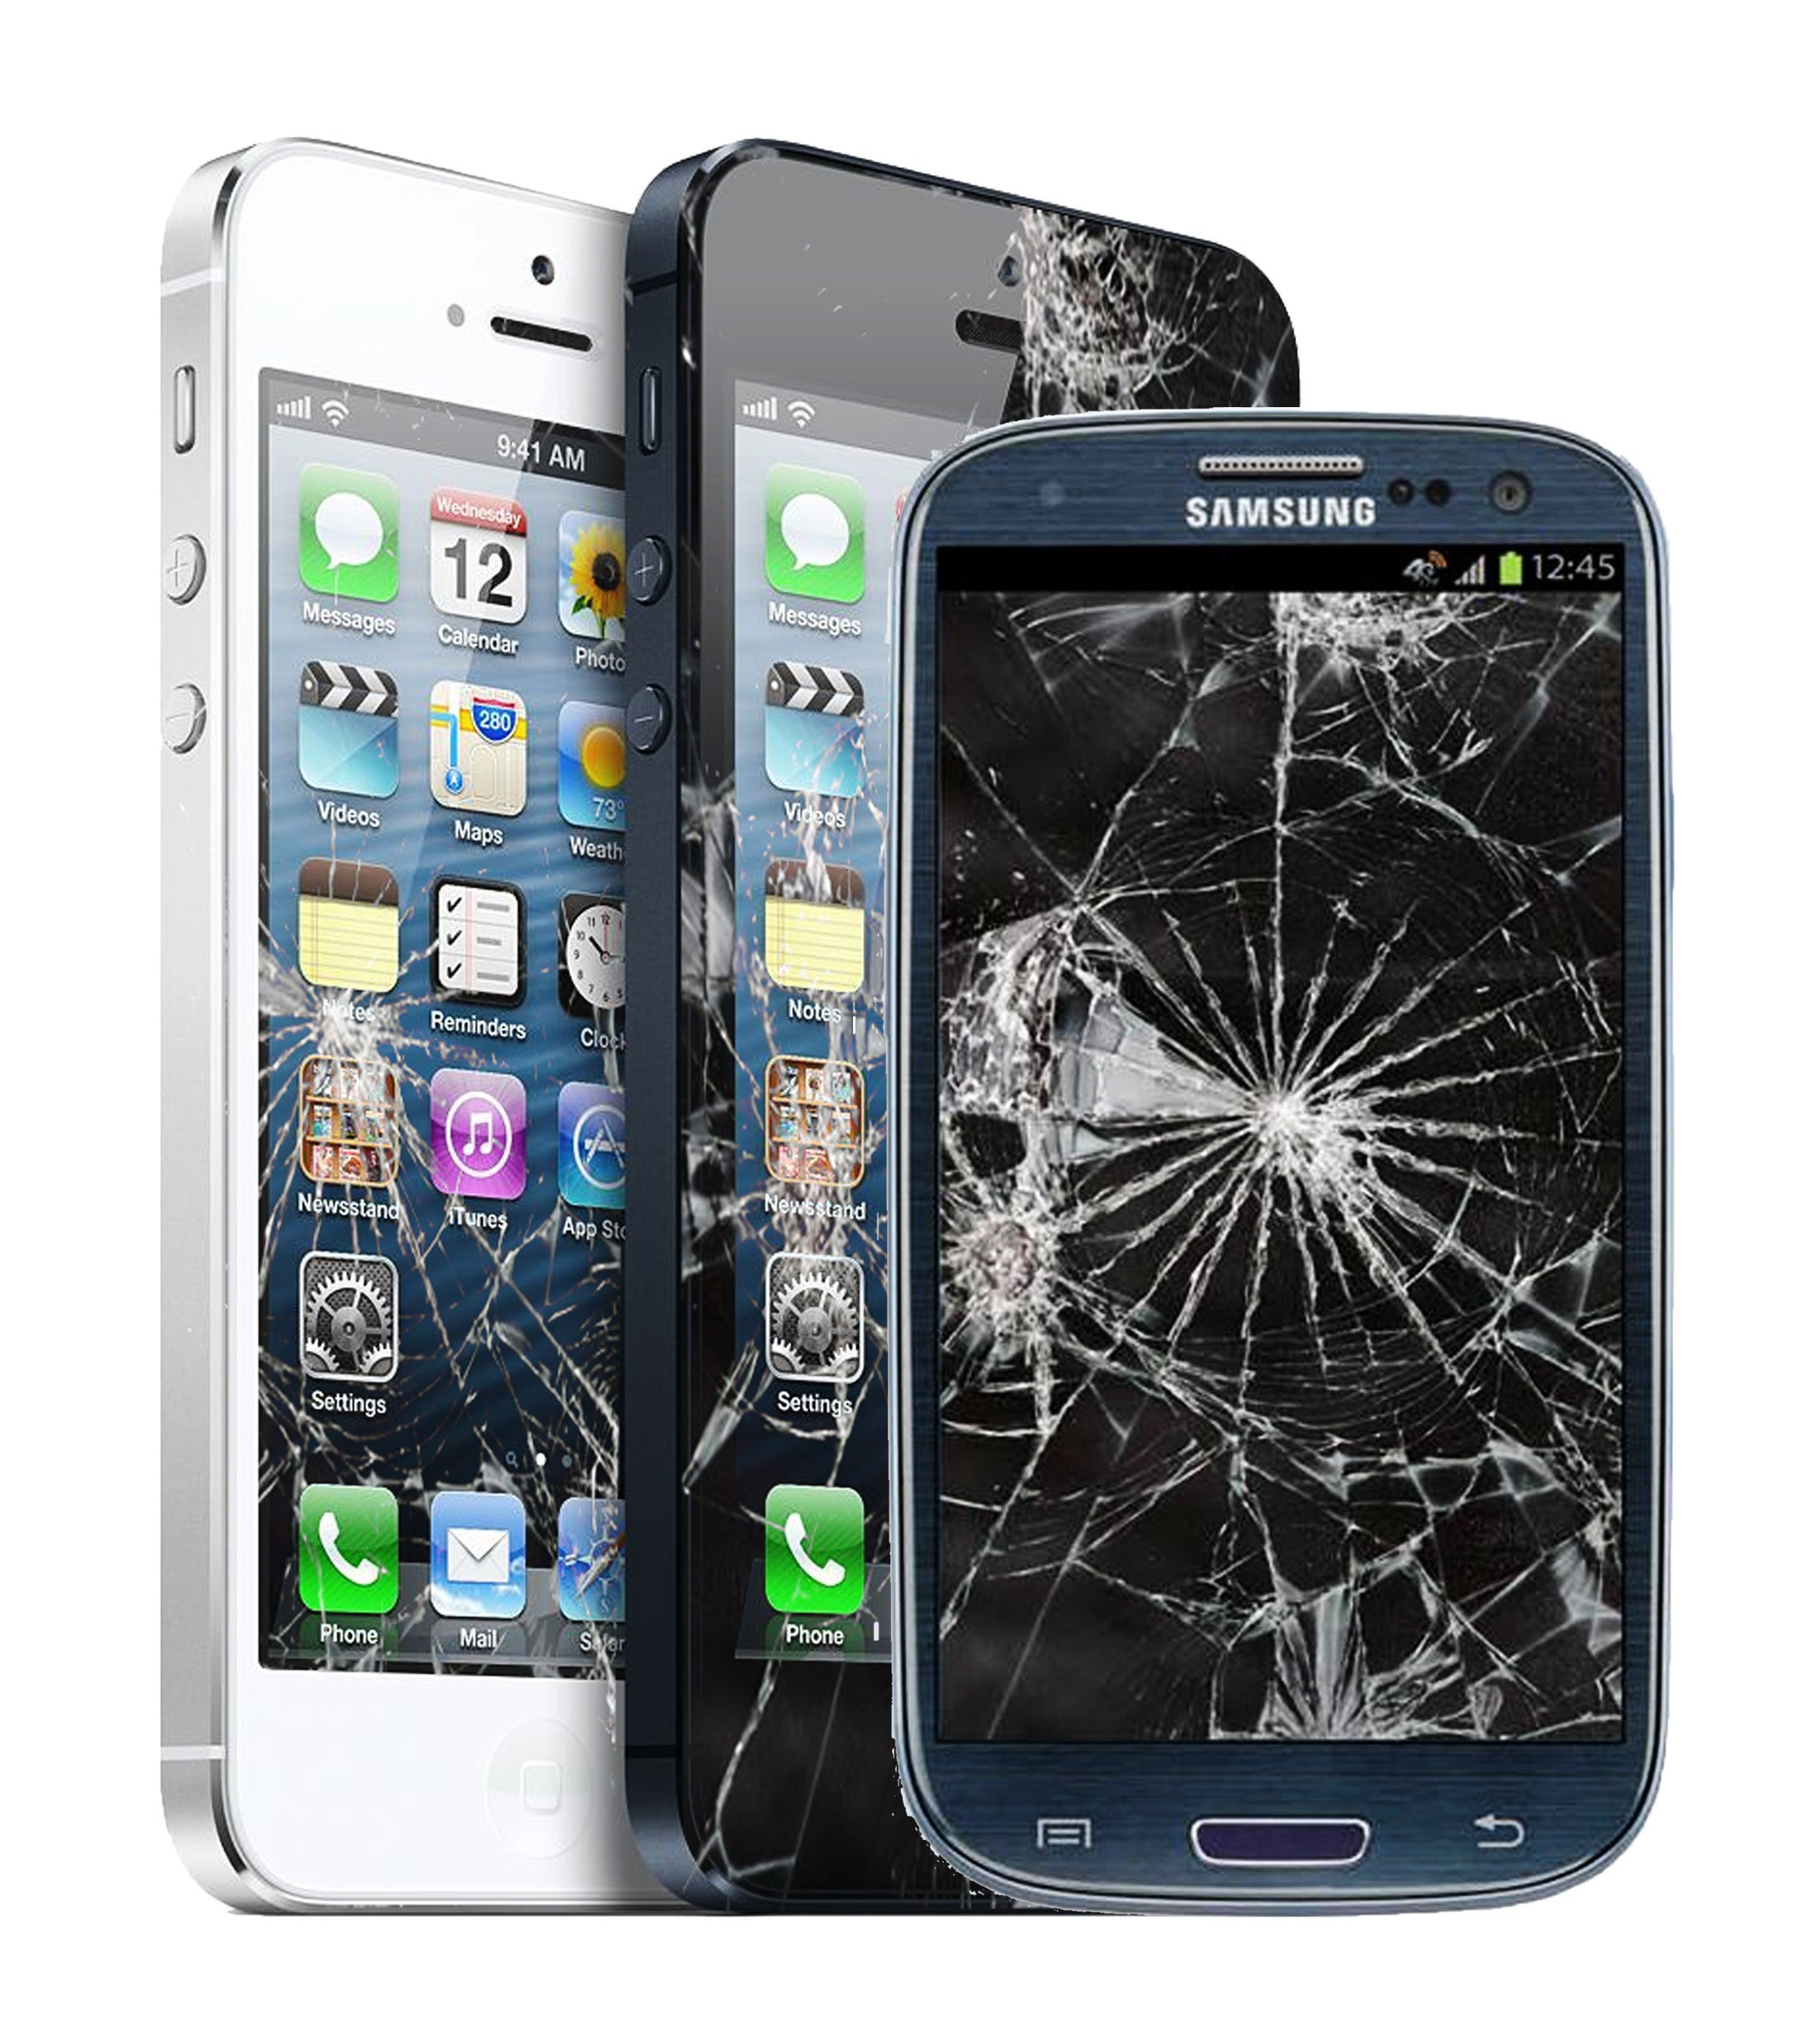 Cell phone Repair Company Near You Bronx | 1800FIX.COM 6O Days ...